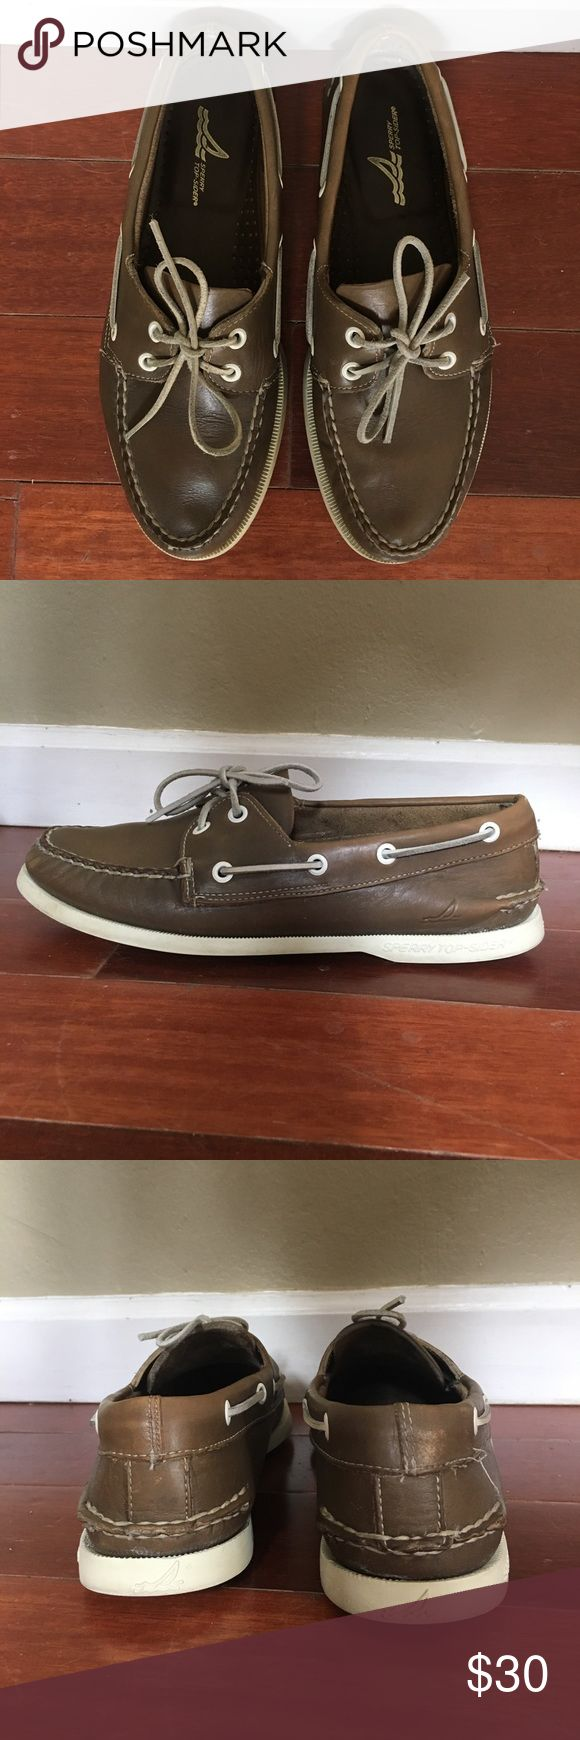 Selling this Sperry Top Siders Men's 6 or Women's 8 on Poshmark! My username is: mohrclosetspace. #shopmycloset #poshmark #fashion #shopping #style #forsale #Sperry Top-Sider #Other